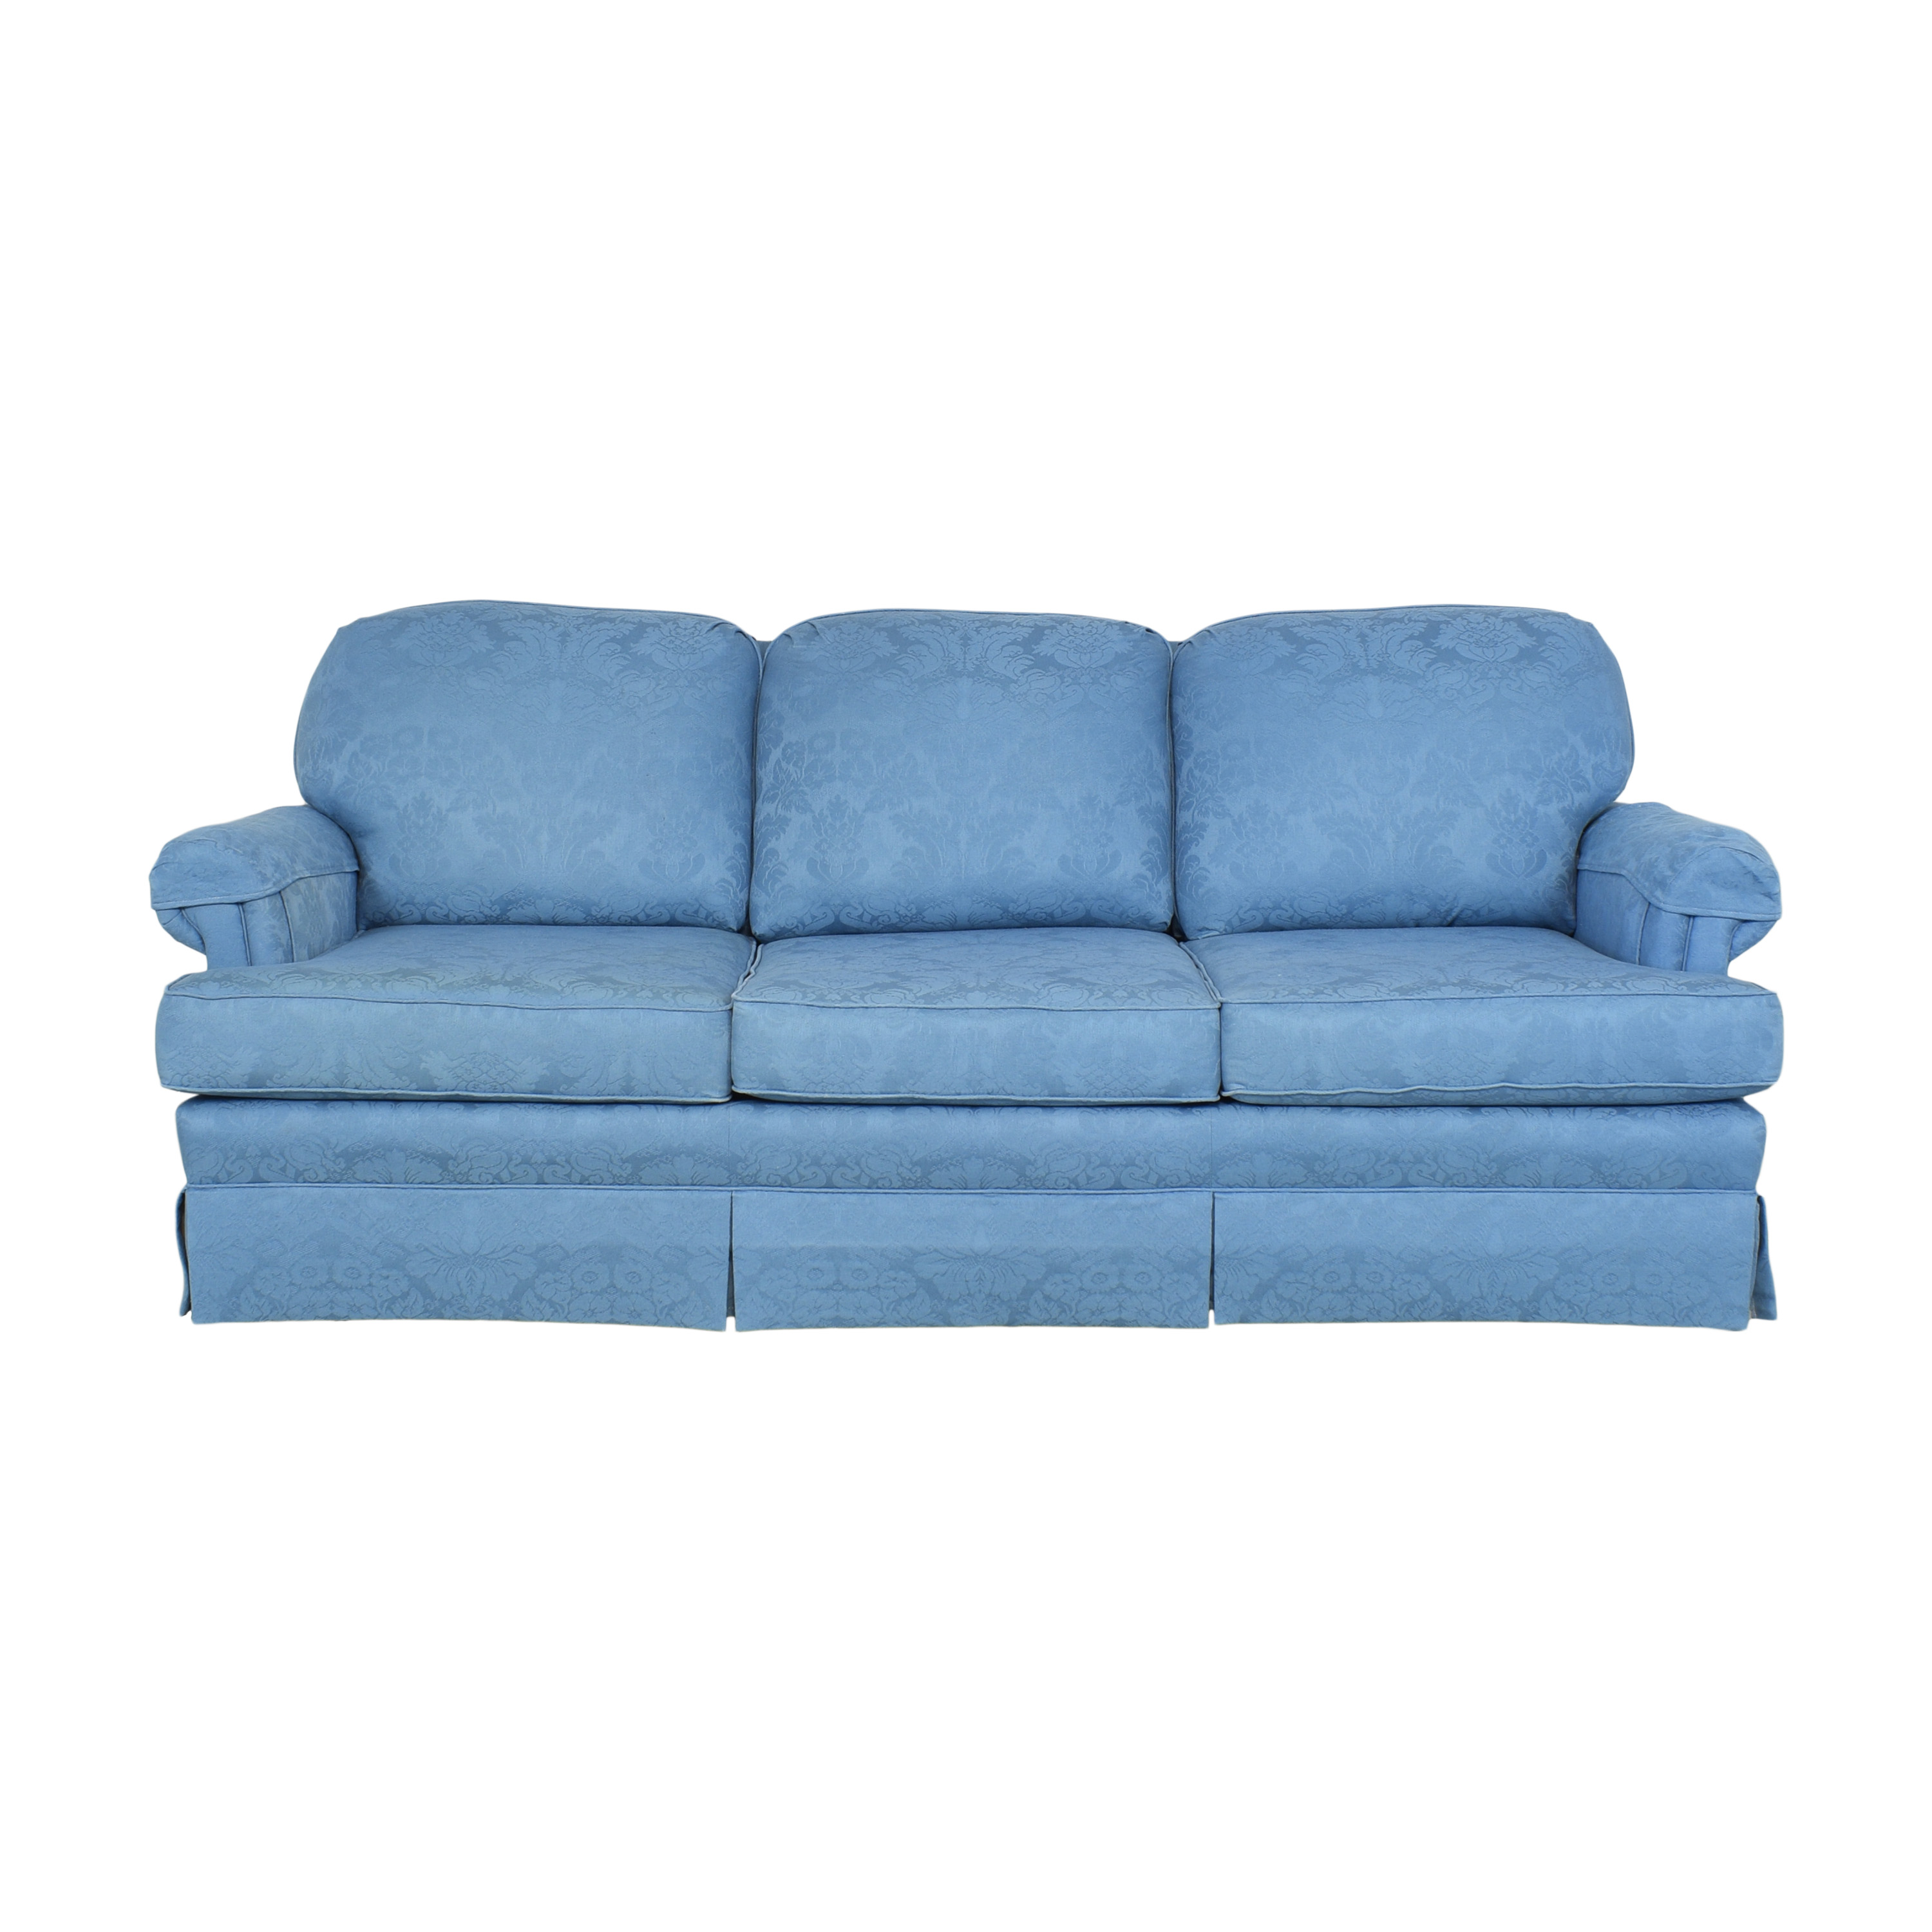 Norwalk Furniture Norwalk Three Cushion Sofa ma